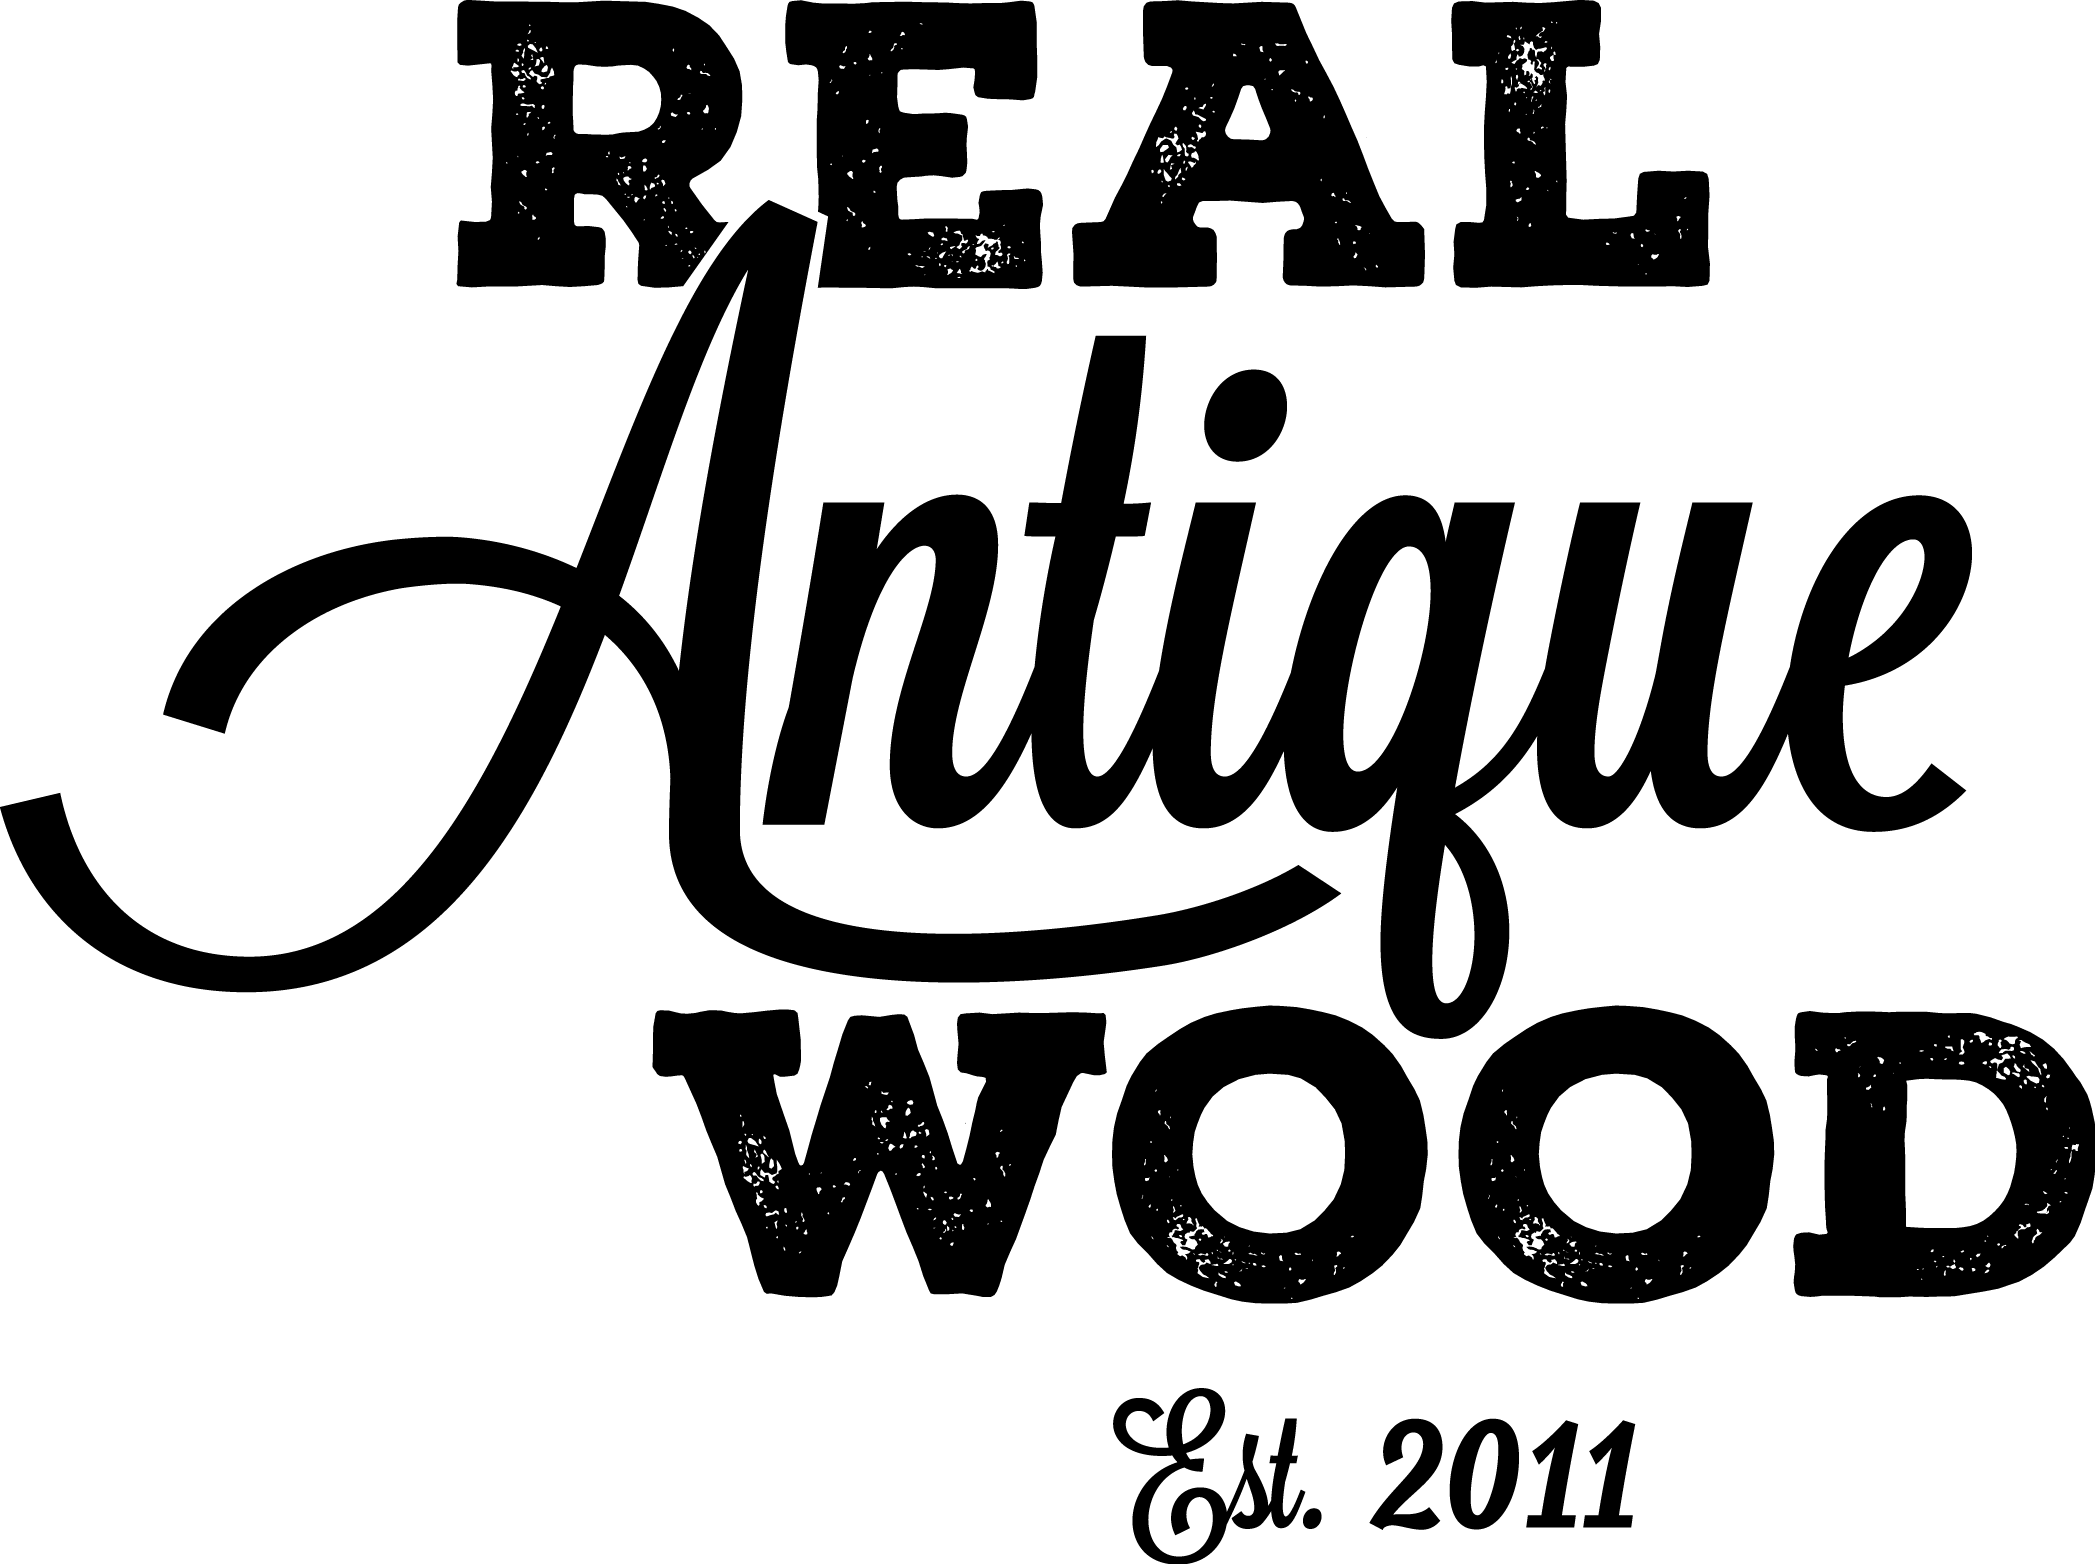 Real Antique Wood Logo - PNG